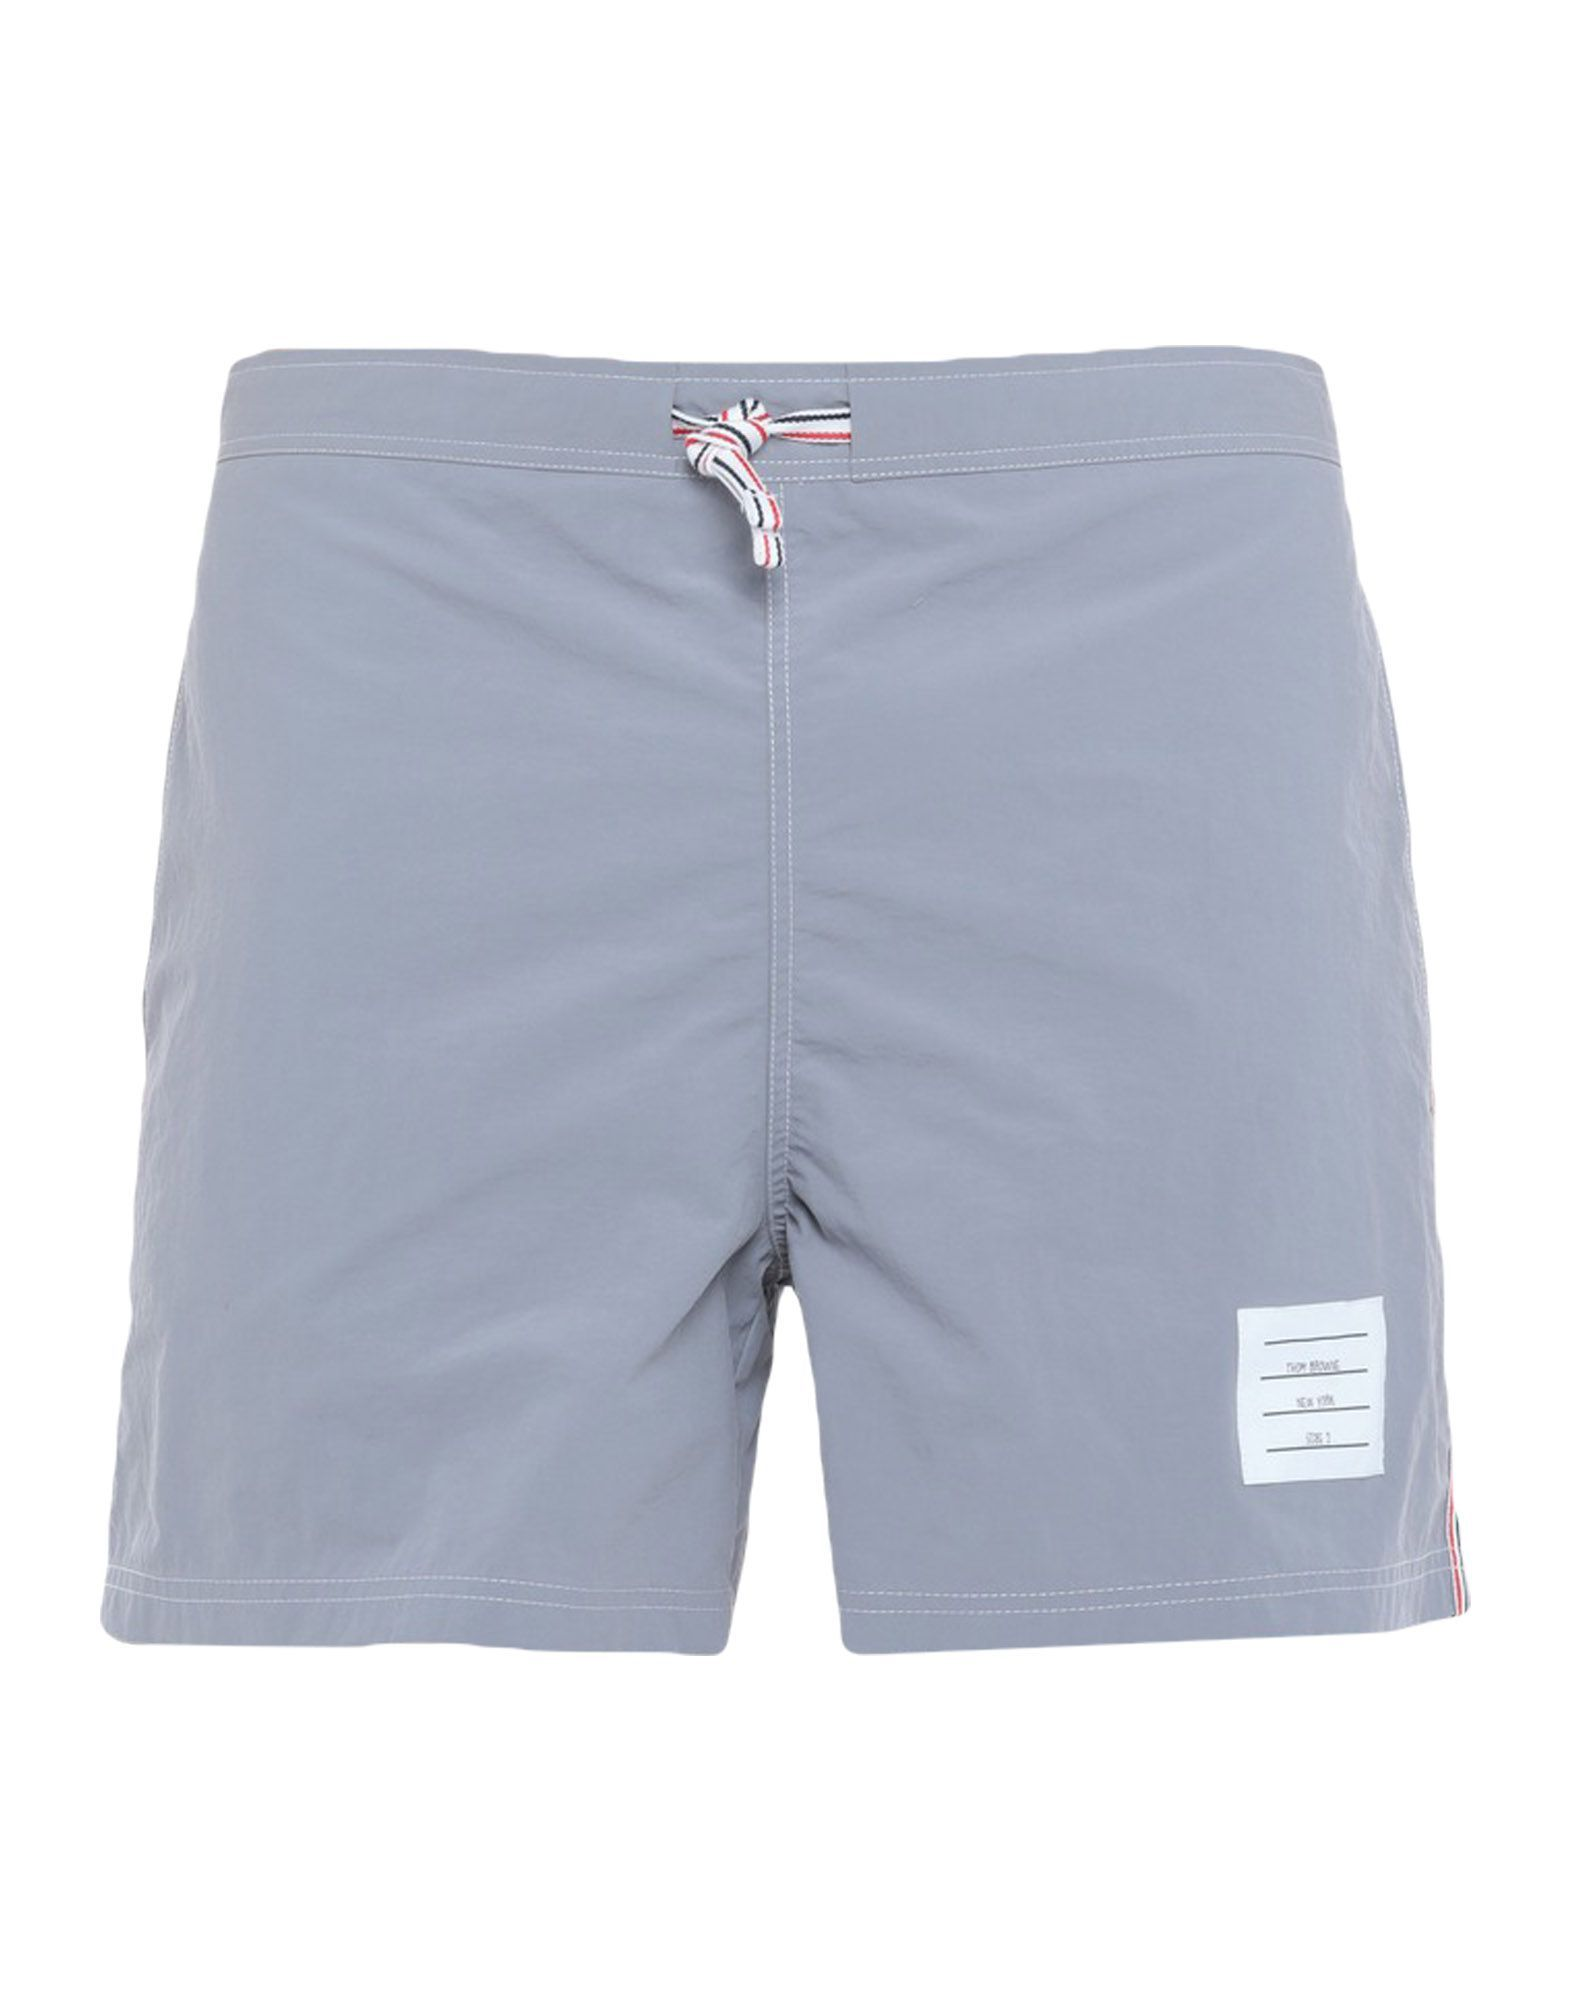 73f807e755b THOM BROWNE SWIM TRUNKS.  thombrowne  cloth